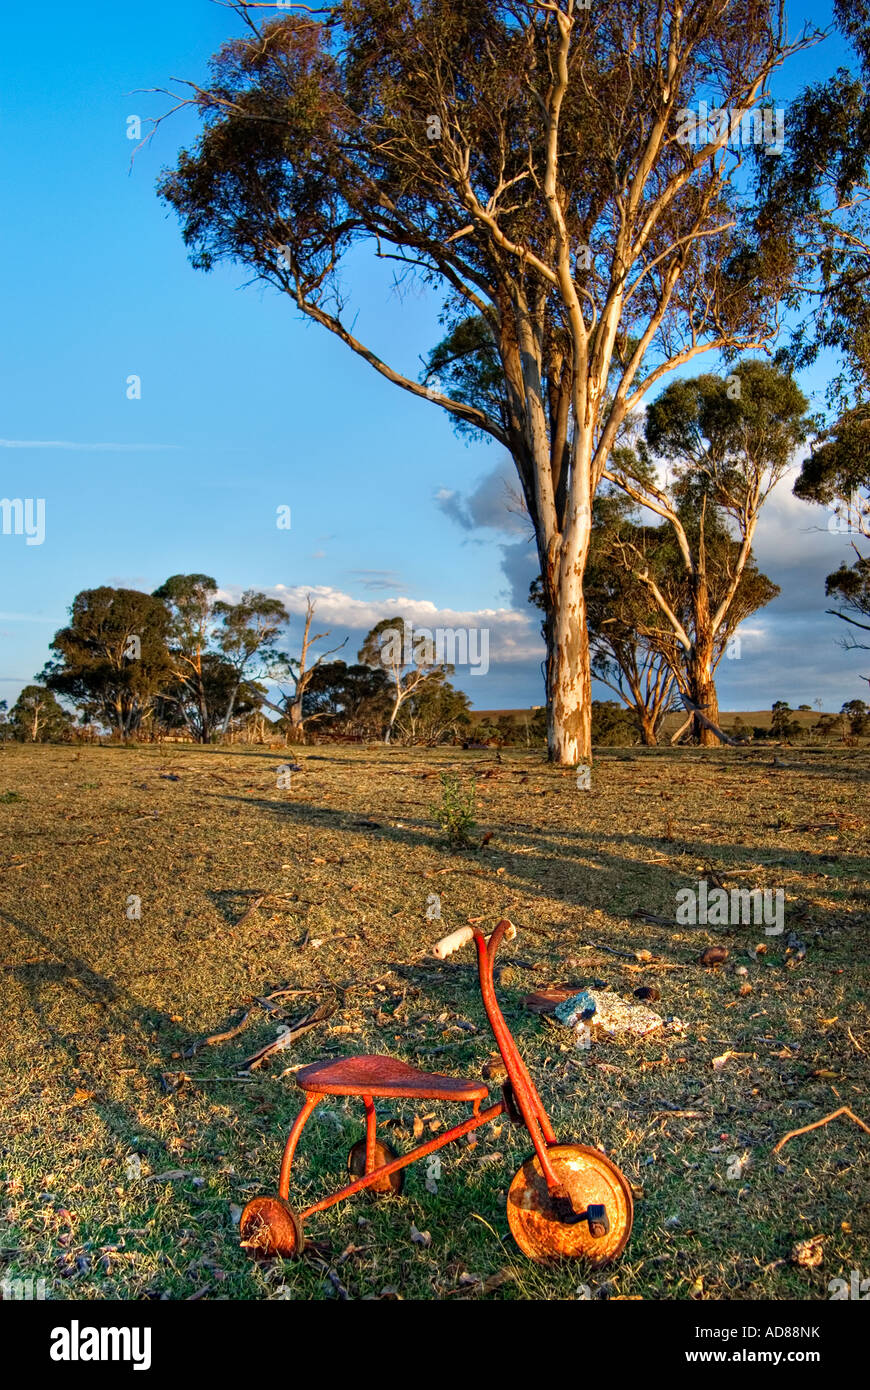 an old tricycle sits forgotten in an empty yard Stock Photo